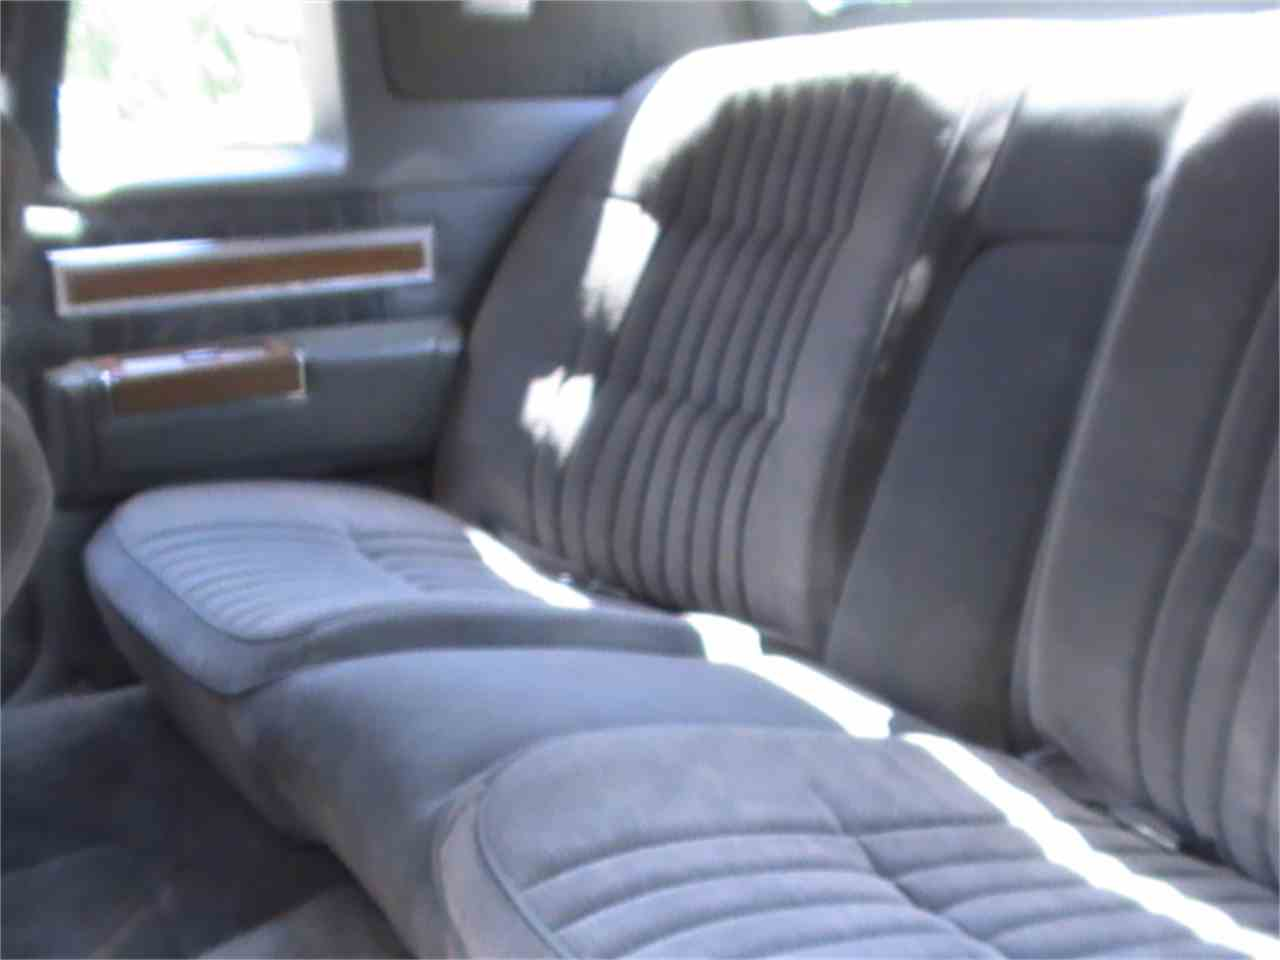 Large Picture of 1983 Cadillac Coupe DeVille located in Lombard Illinois - $13,500.00 Offered by a Private Seller - KBYE